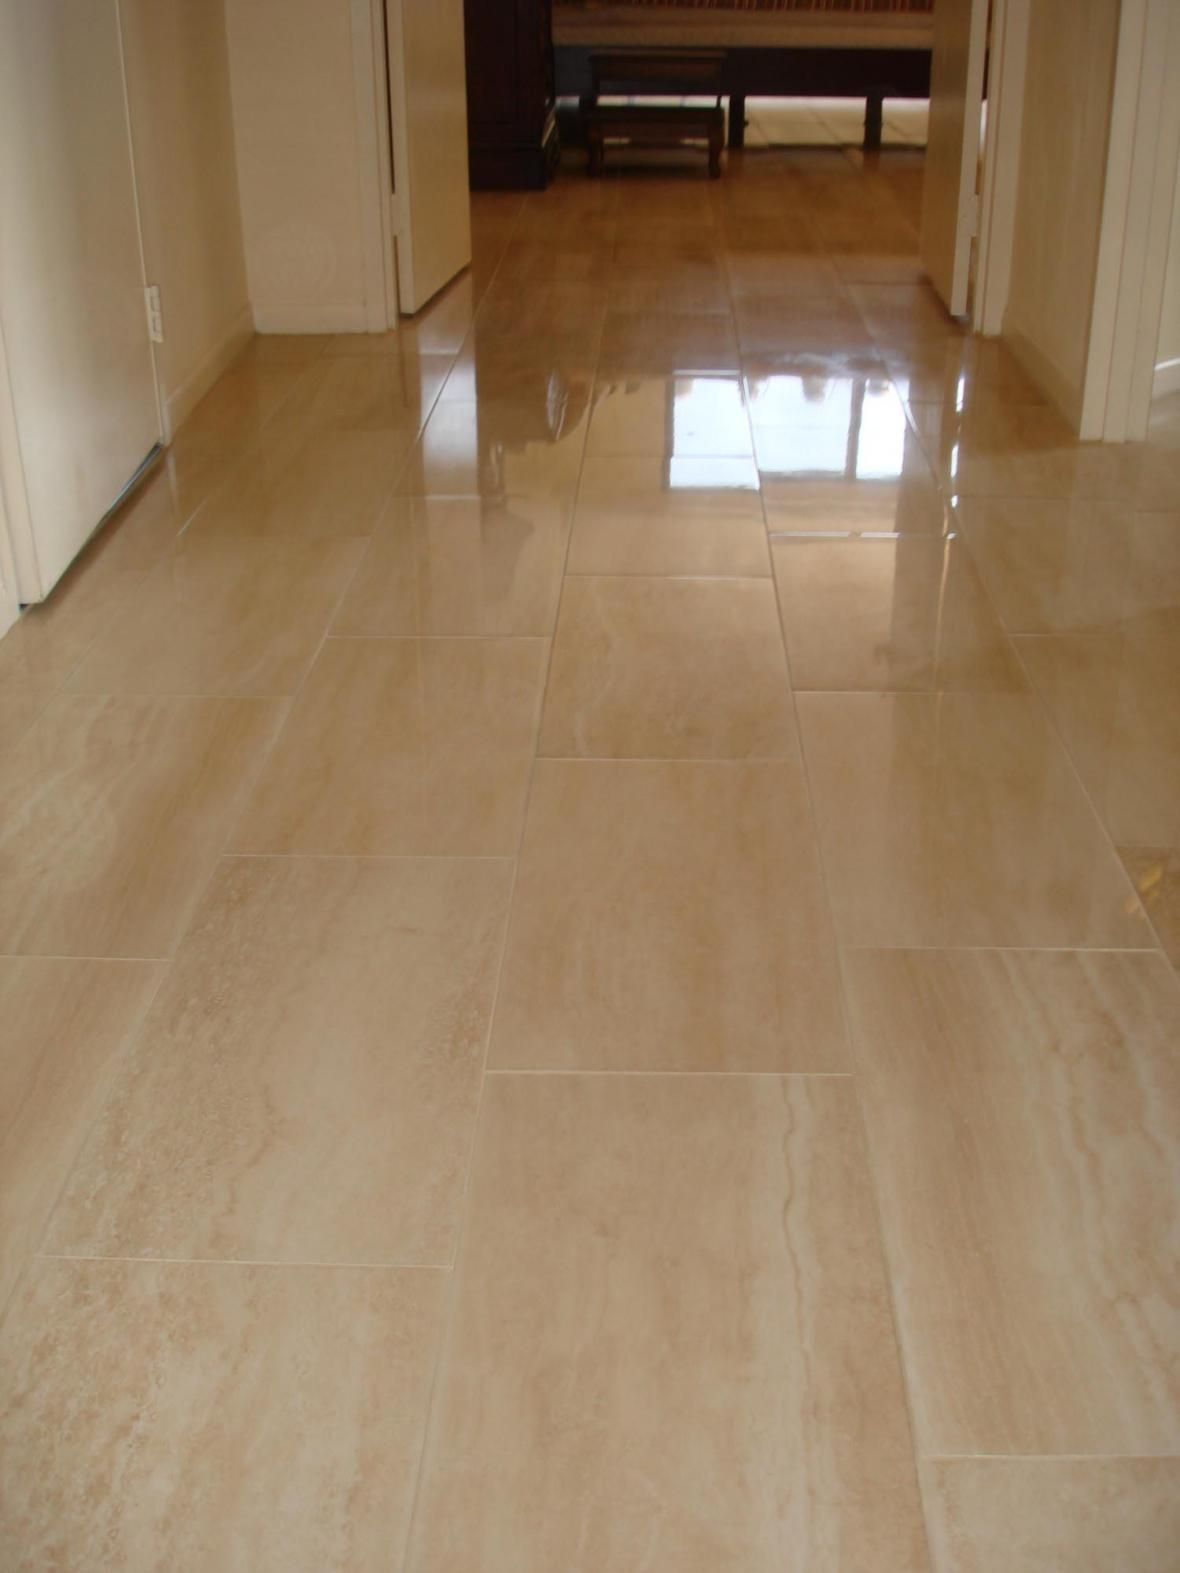 Porcelain Tile Floor In Hallway Ceramic Floor Tile Porcelain Tile Floor Kitchen House Tiles